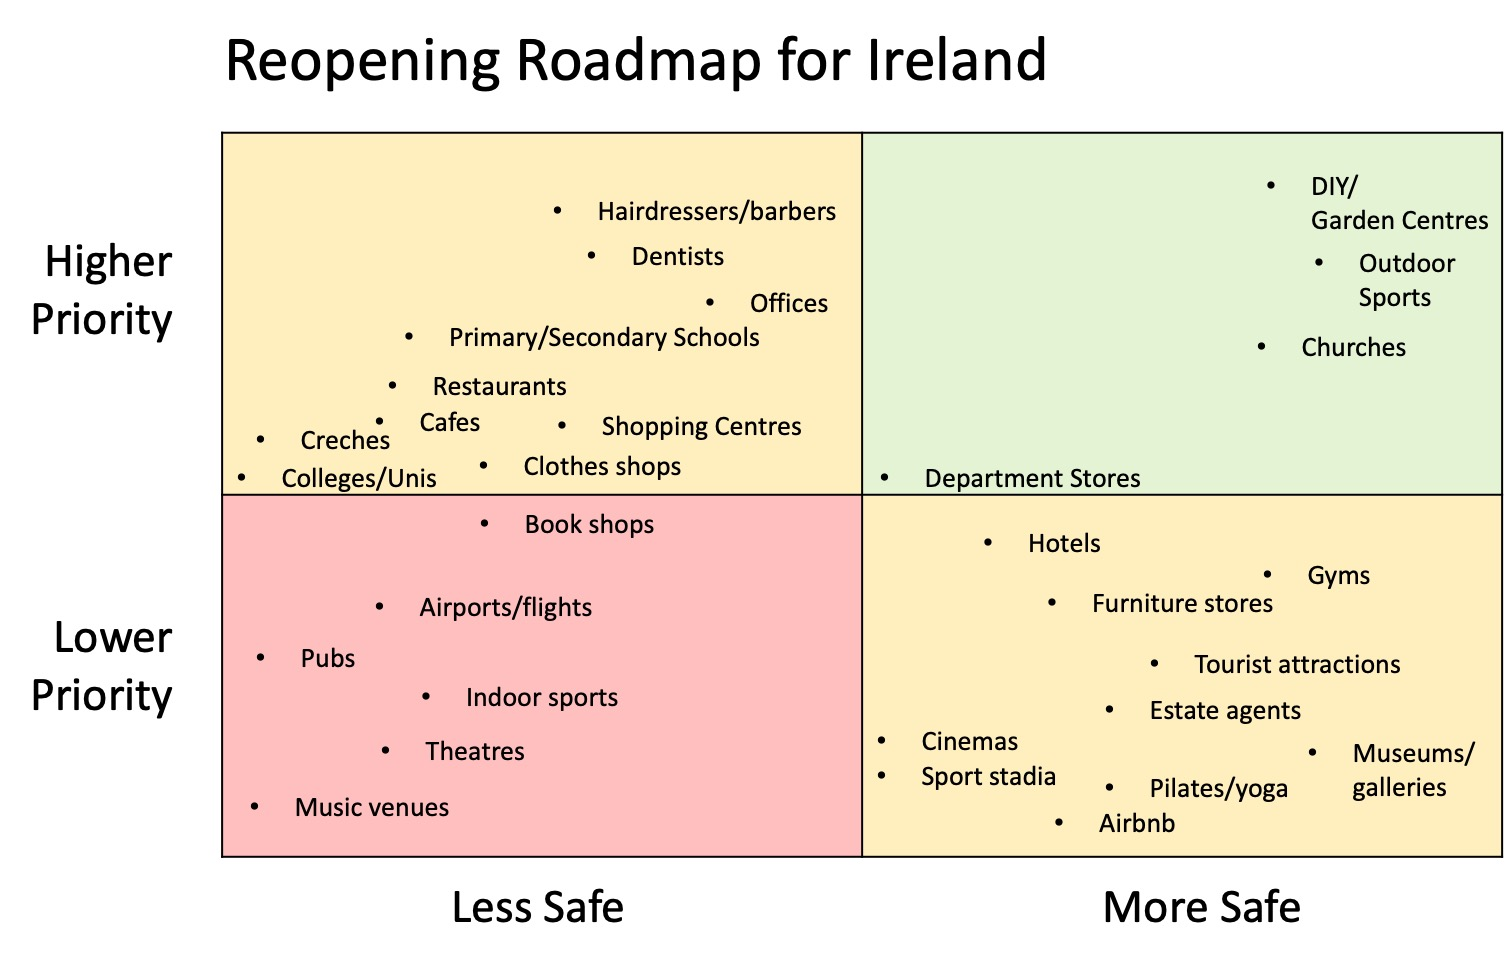 Reopening Roadmap for Ireland from May to August